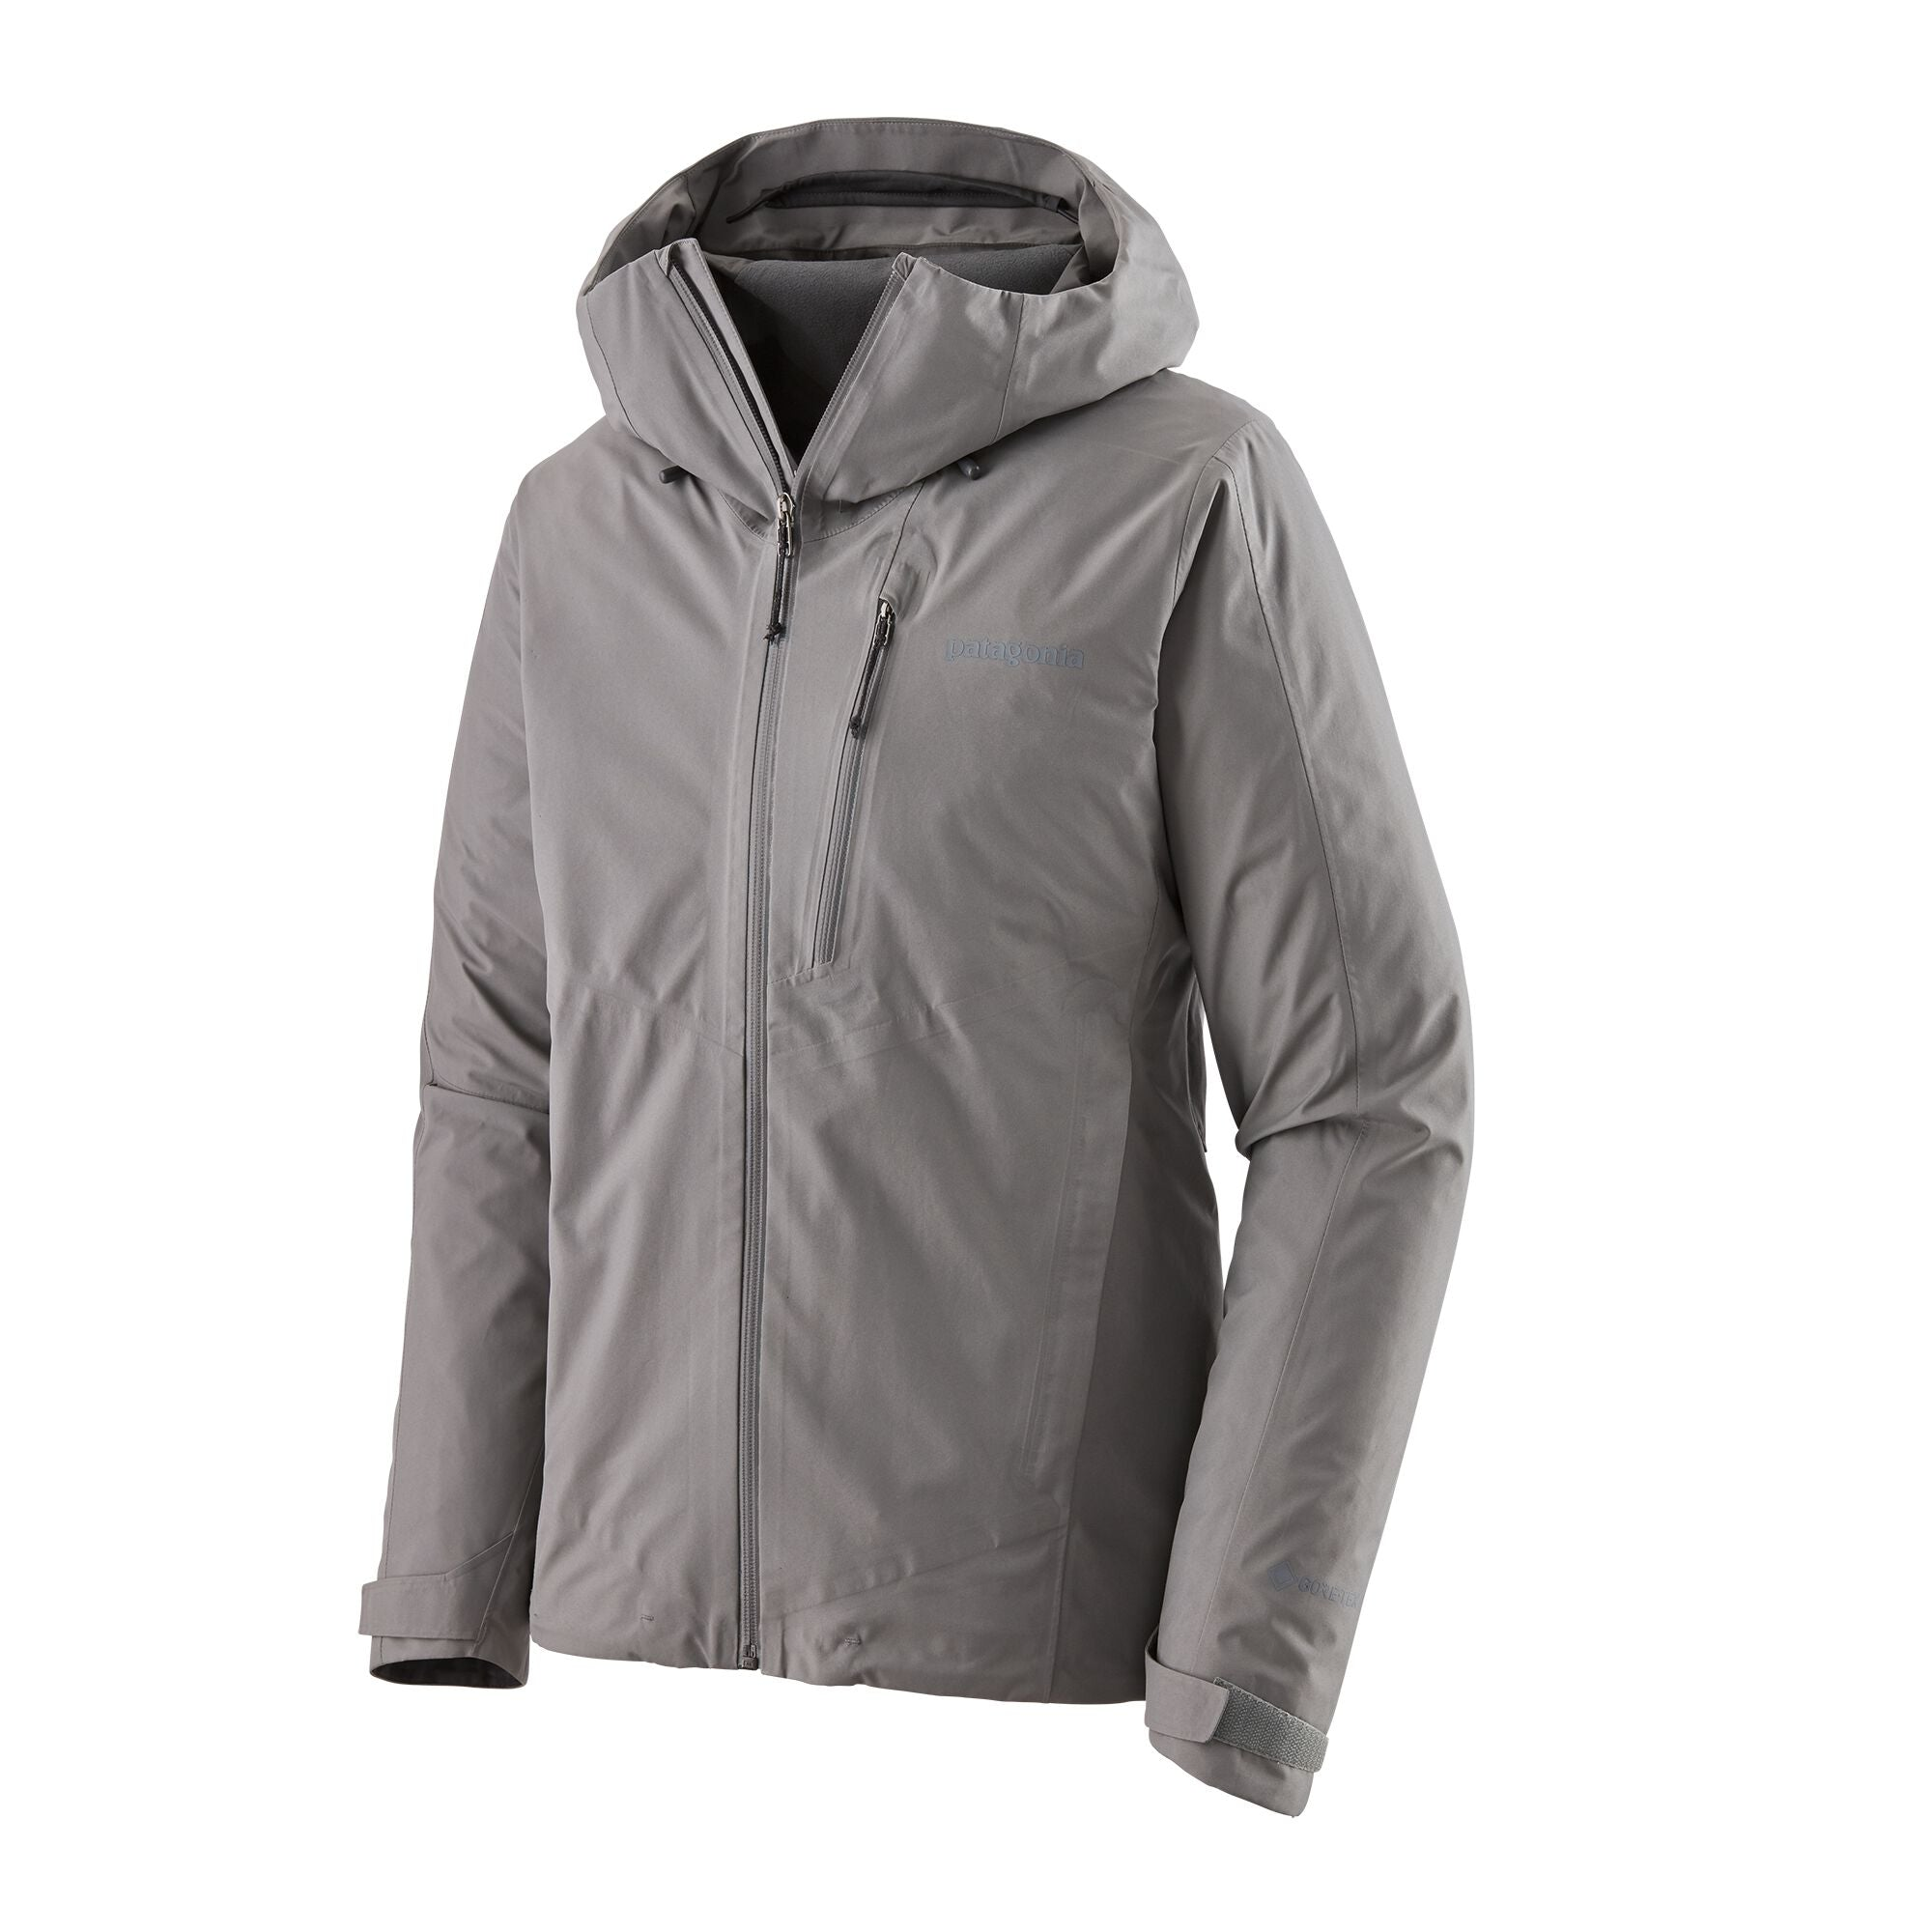 Chaqueta Mujer Calcite Jacket Gris Patagonia